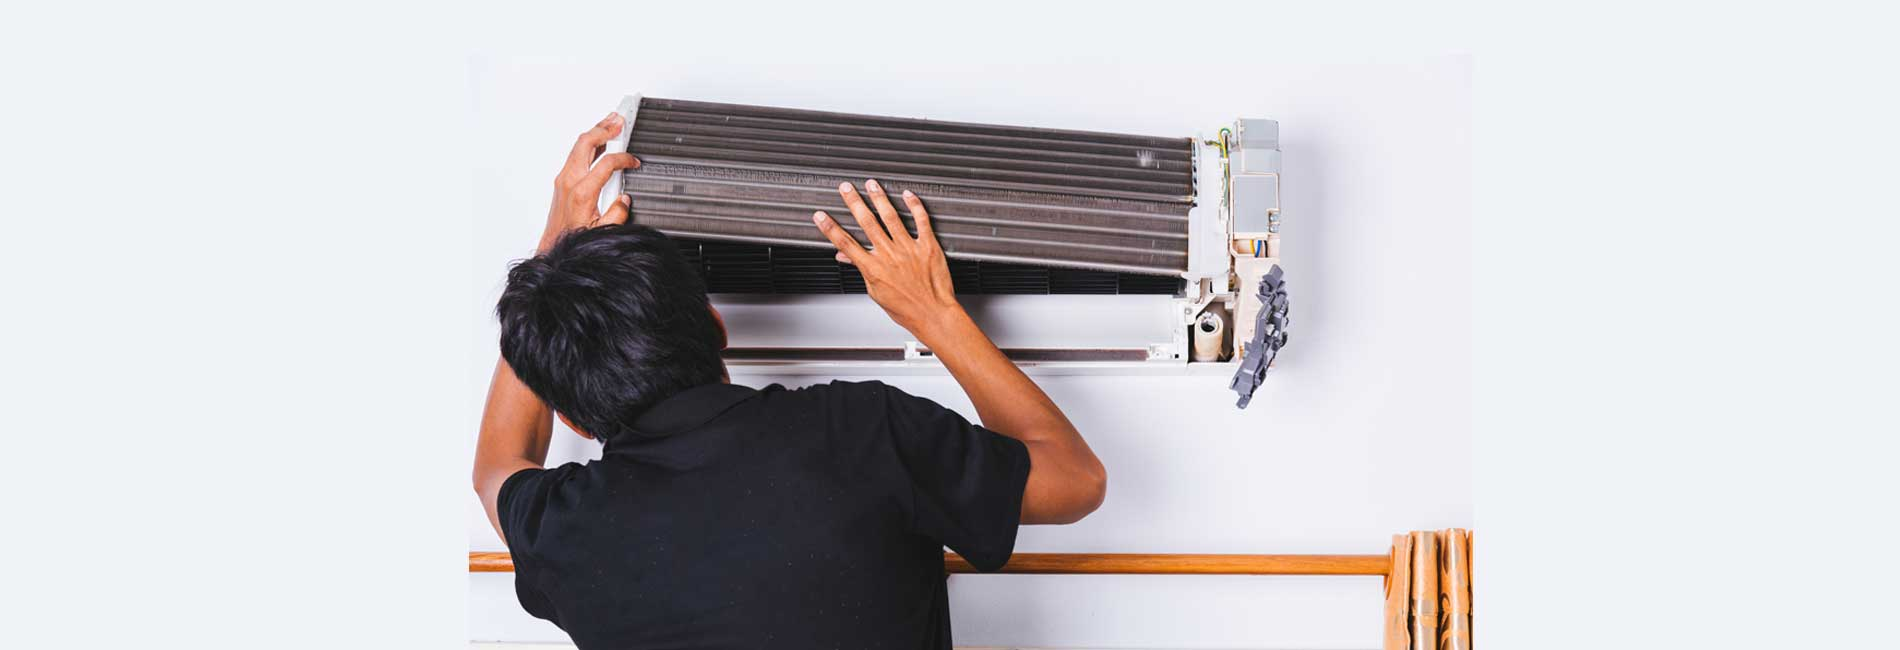 Daikin Air Condition Repair in Fort St. George